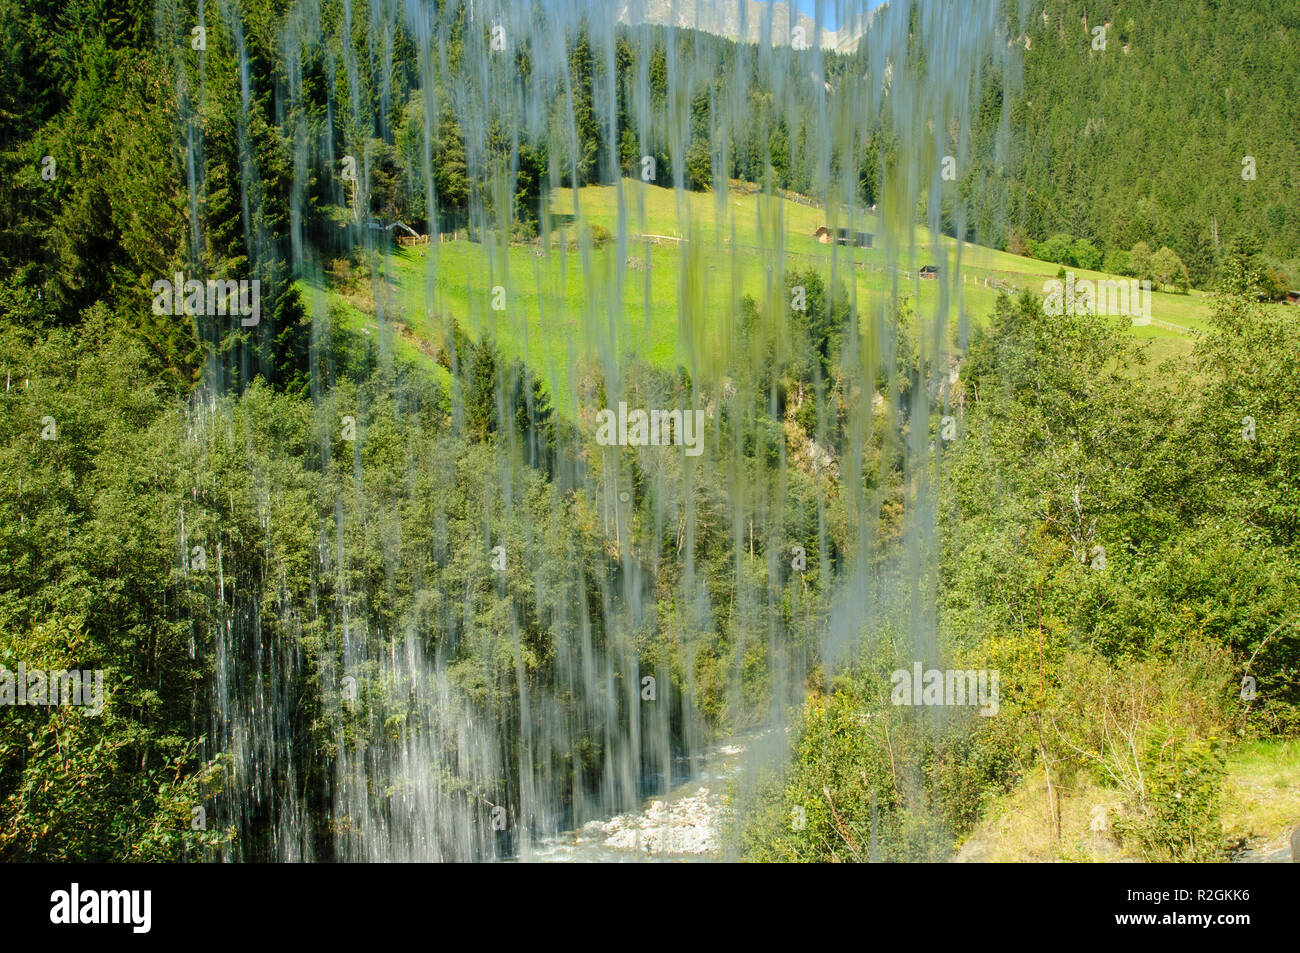 Tyrolean Alpine landscape as seen through a curtain of water from behind a waterfall. Photographed in Stubai Valley, Tyrol, Austria Stock Photo